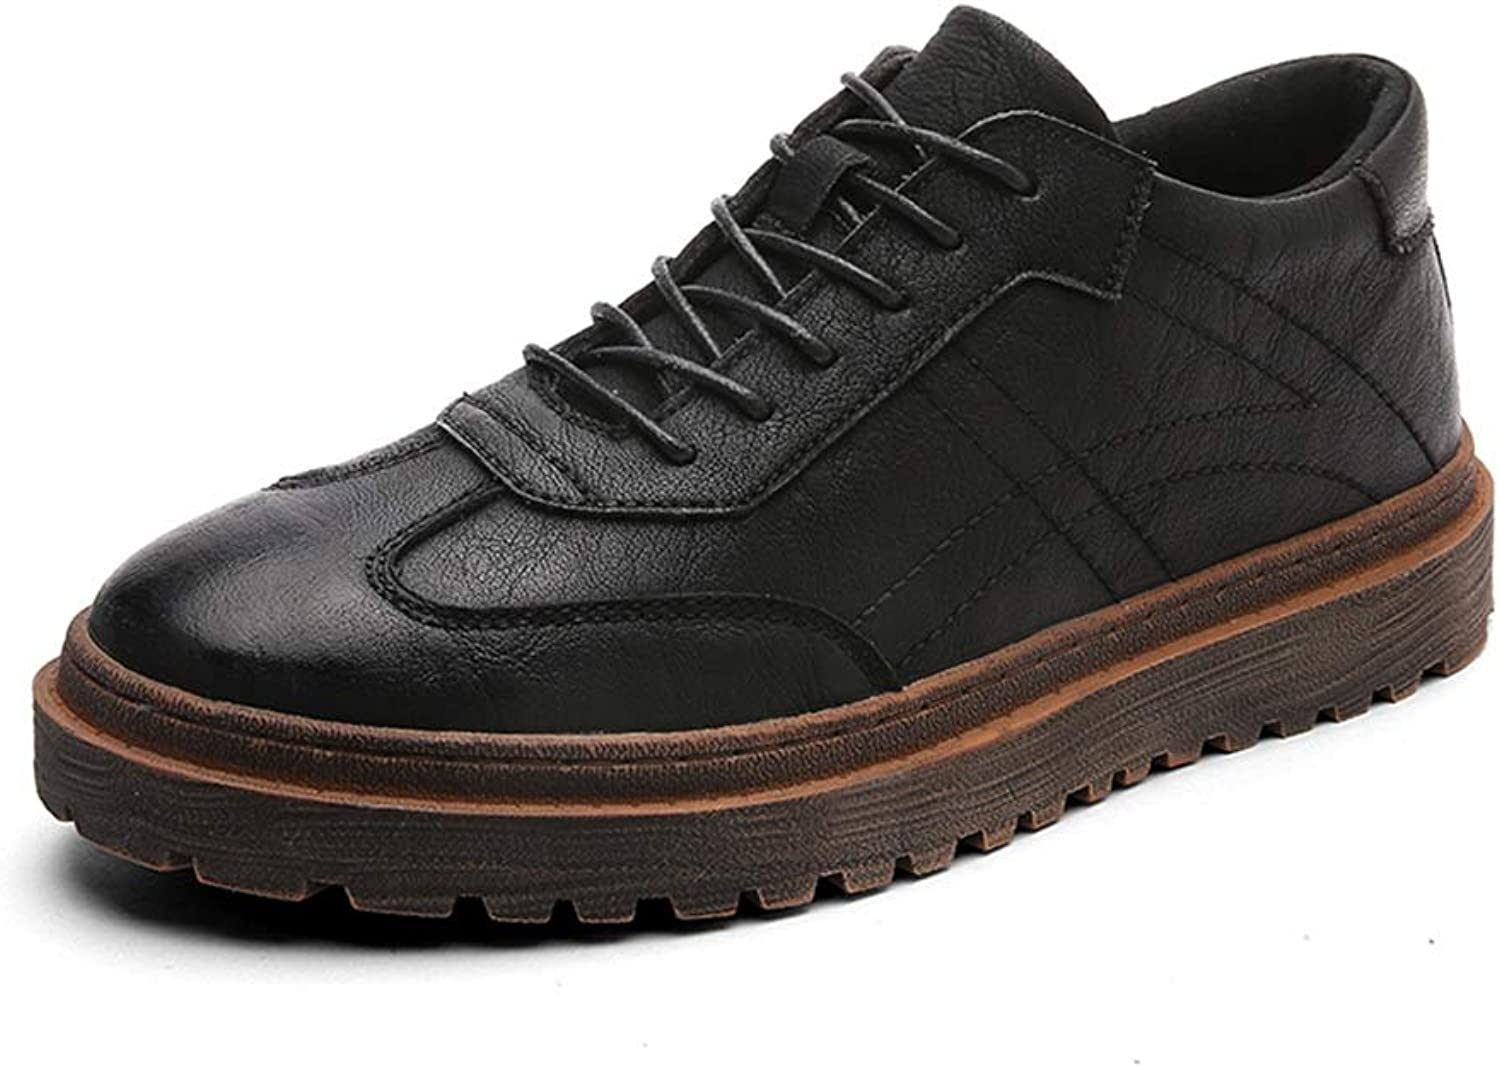 SRY-Fashion shoes Men's Simple Fashion Oxford Casual Simple British Style Outsole Lace-up Formal shoes